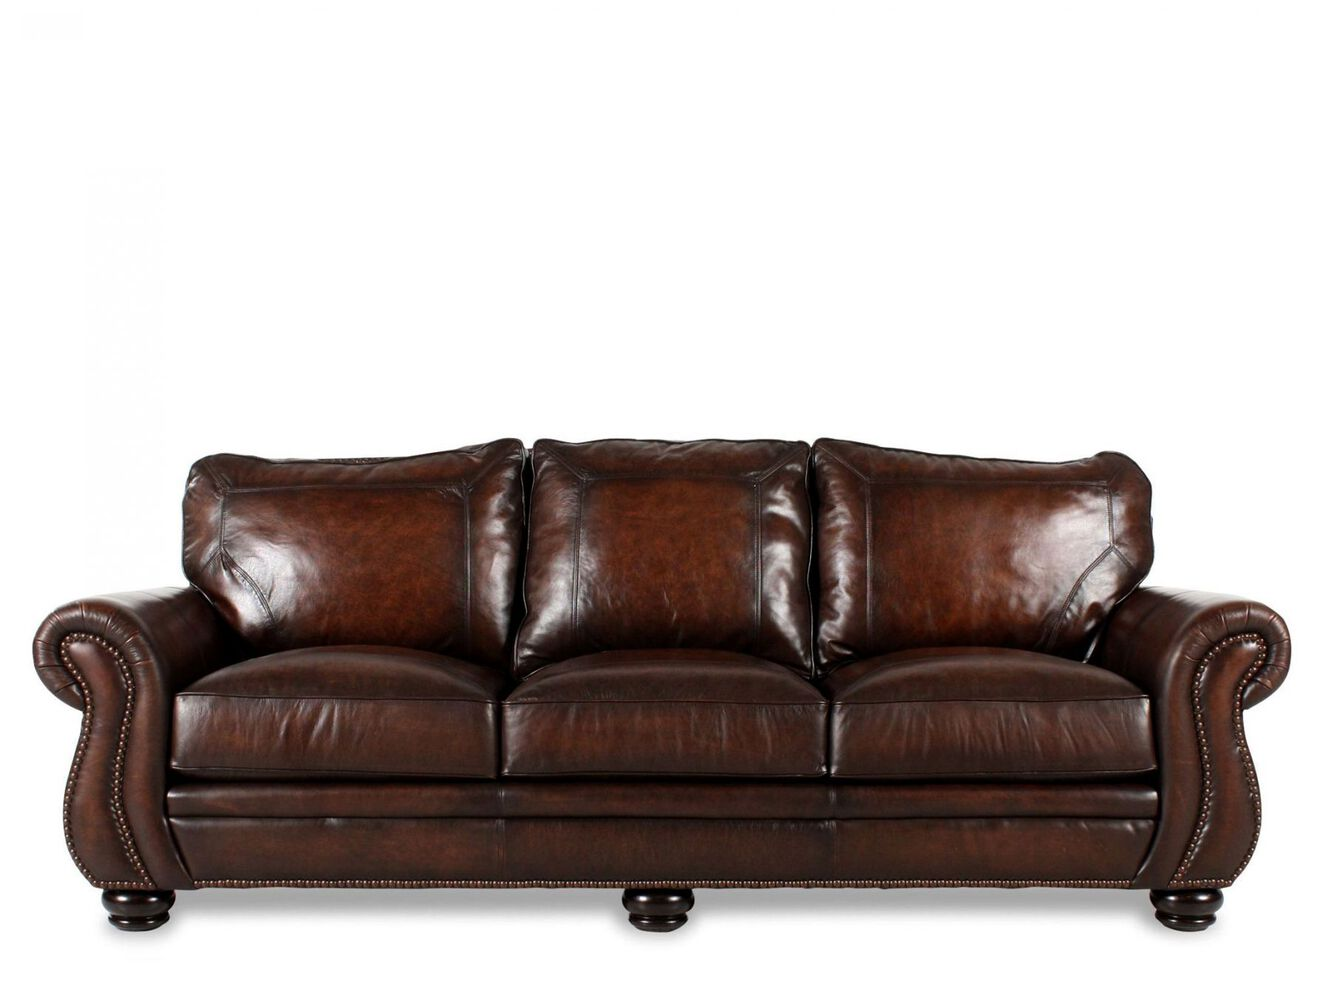 Bernhardt Leather Sofa | Mathis Brothers